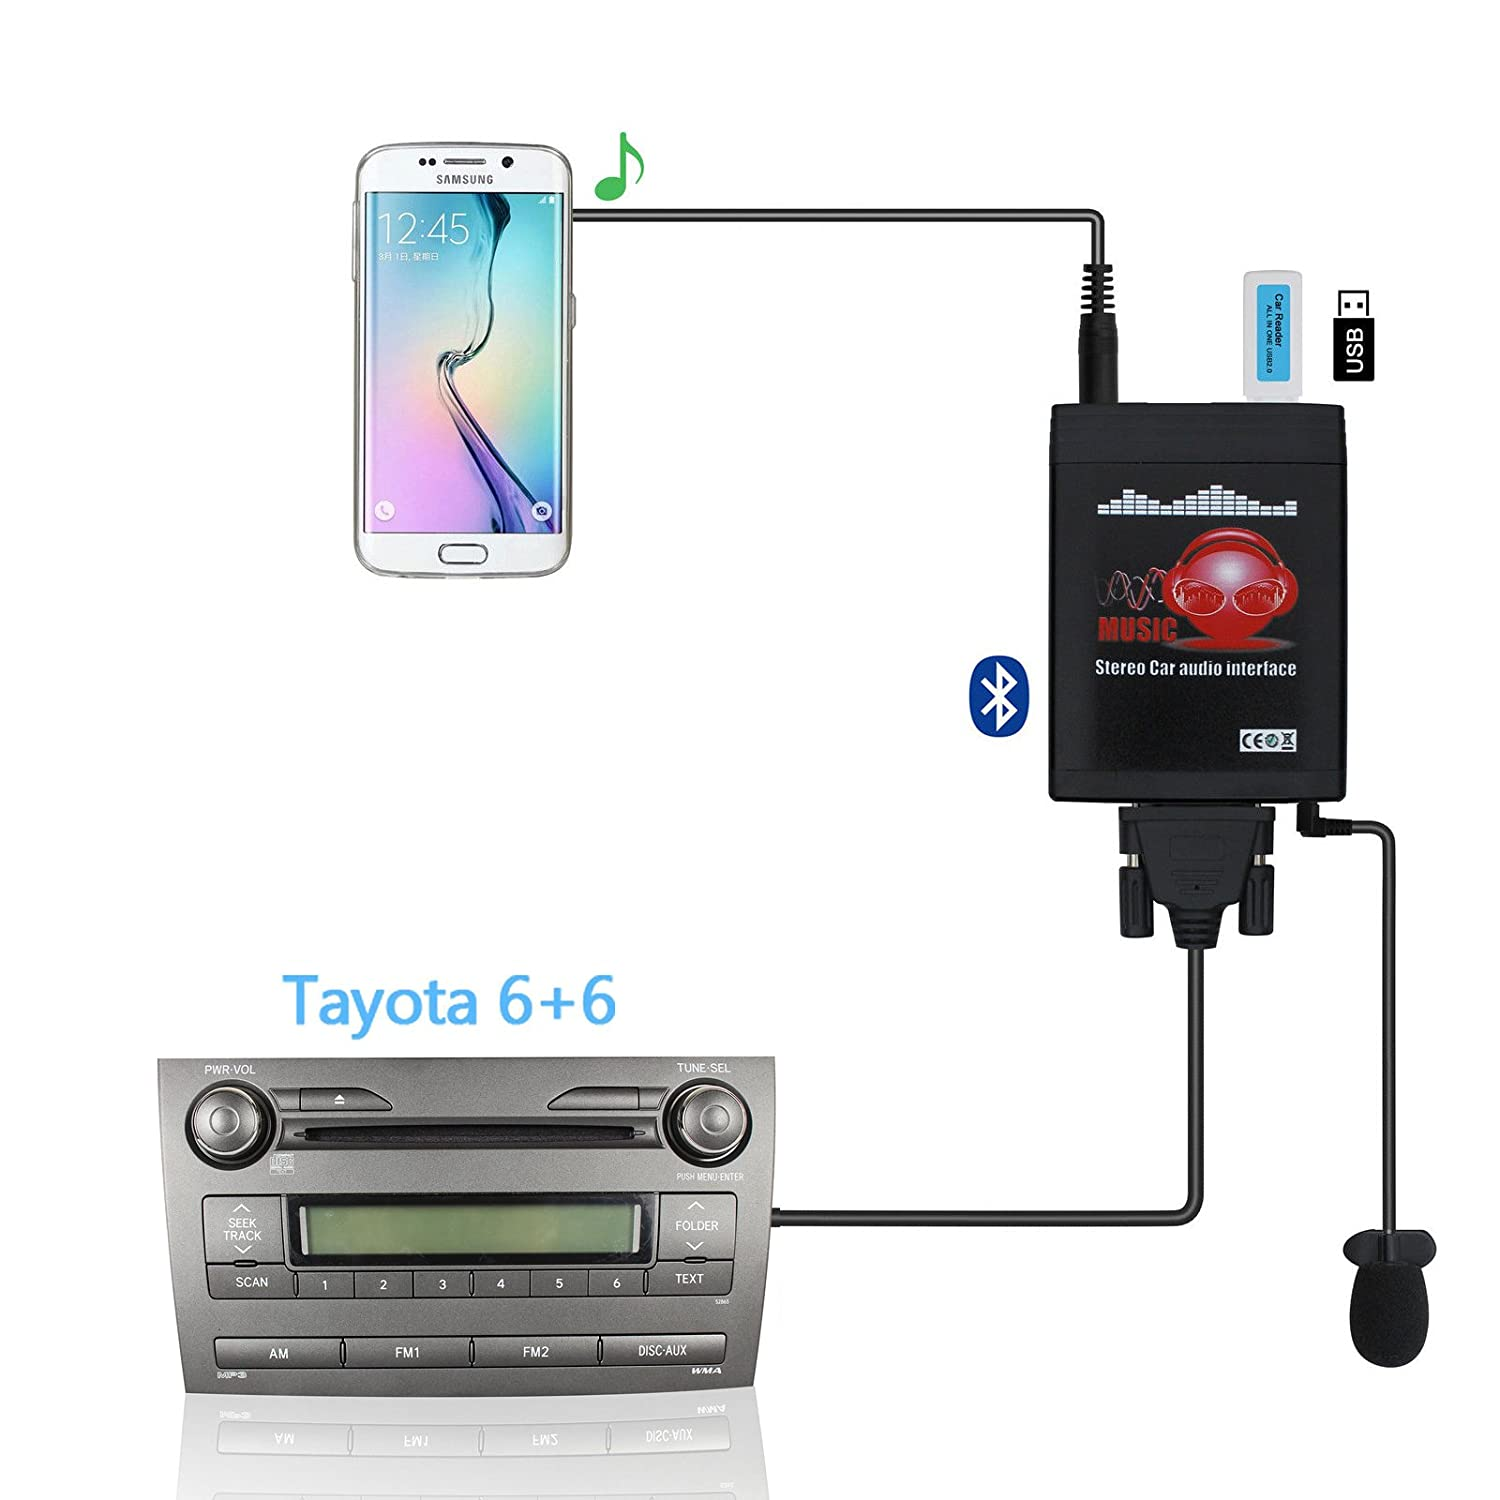 Bluetooth Car Adapter  Yomikoo Car MP3 USB/AUX 3.5mm Stereo Wireless Music Receiver Wireless Hands Free Auto Bluetooth Adapter For Toyota (6+6)Pin Camry Tacoma Corolla Tundra 4runner RAV4 Lexus Plastic 4330368057